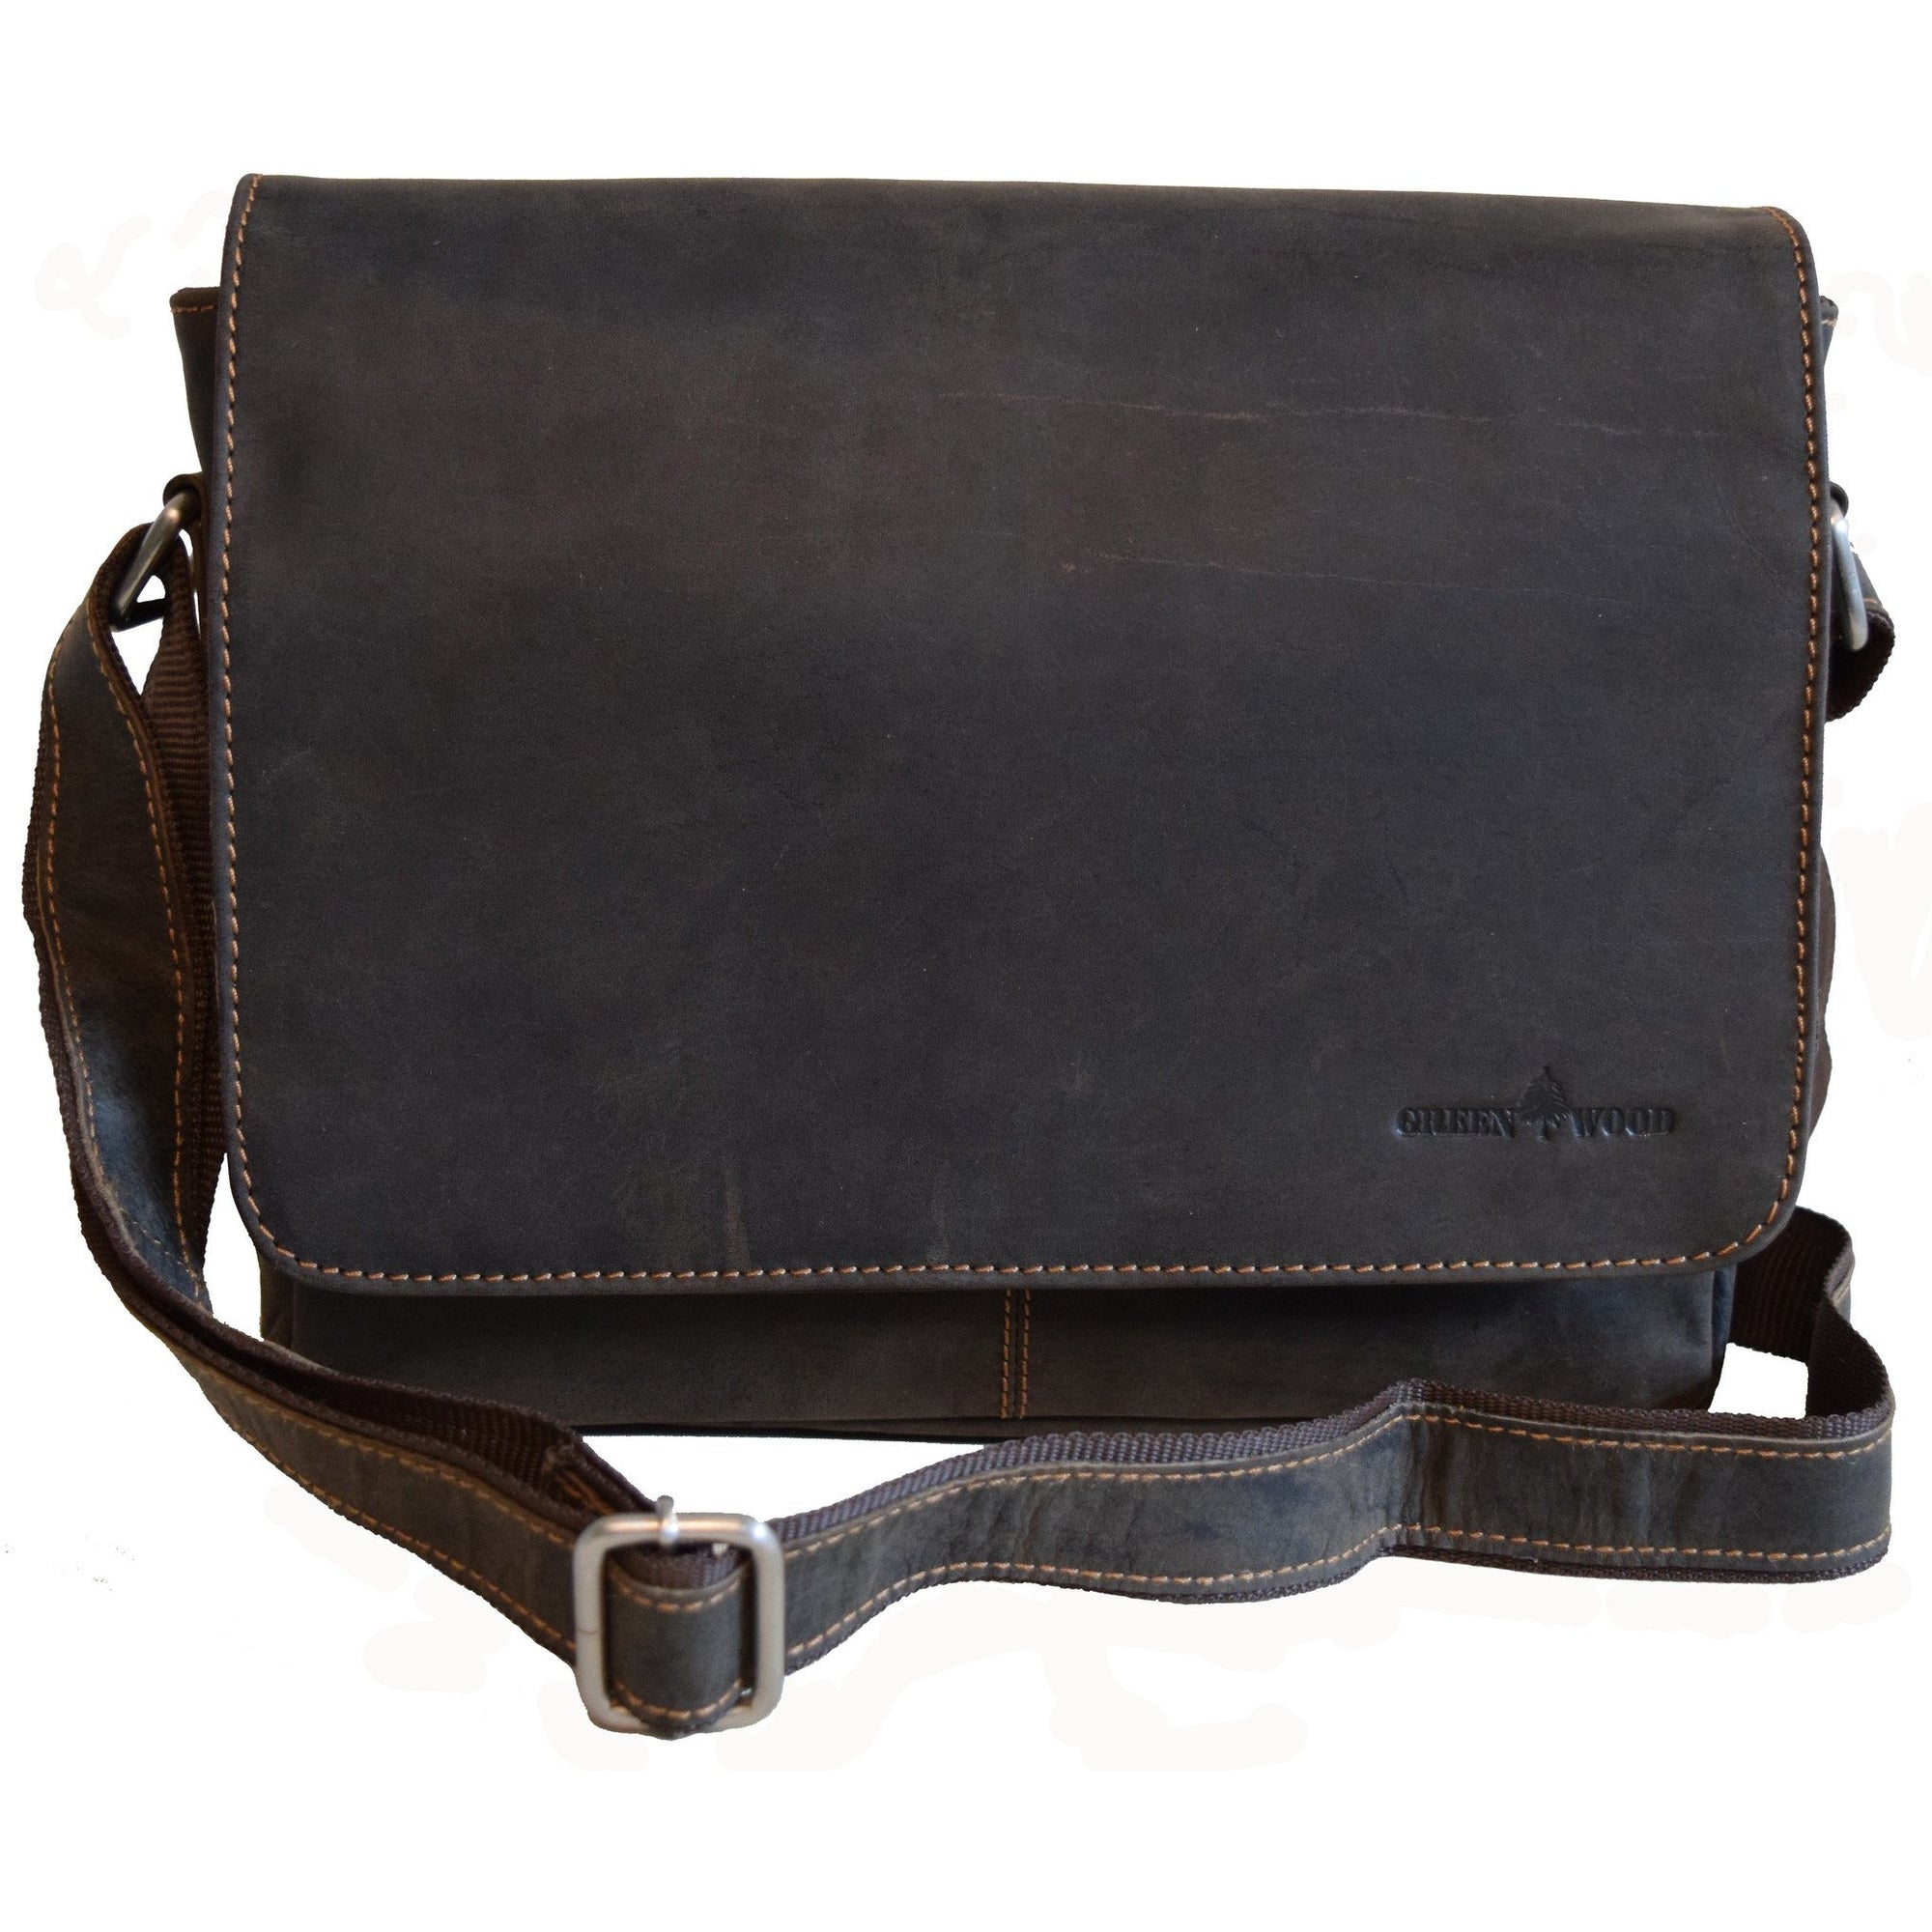 Smart Messenger Steven - Brown - Greenwood Australia - Handcrafted Premium Leather Goods